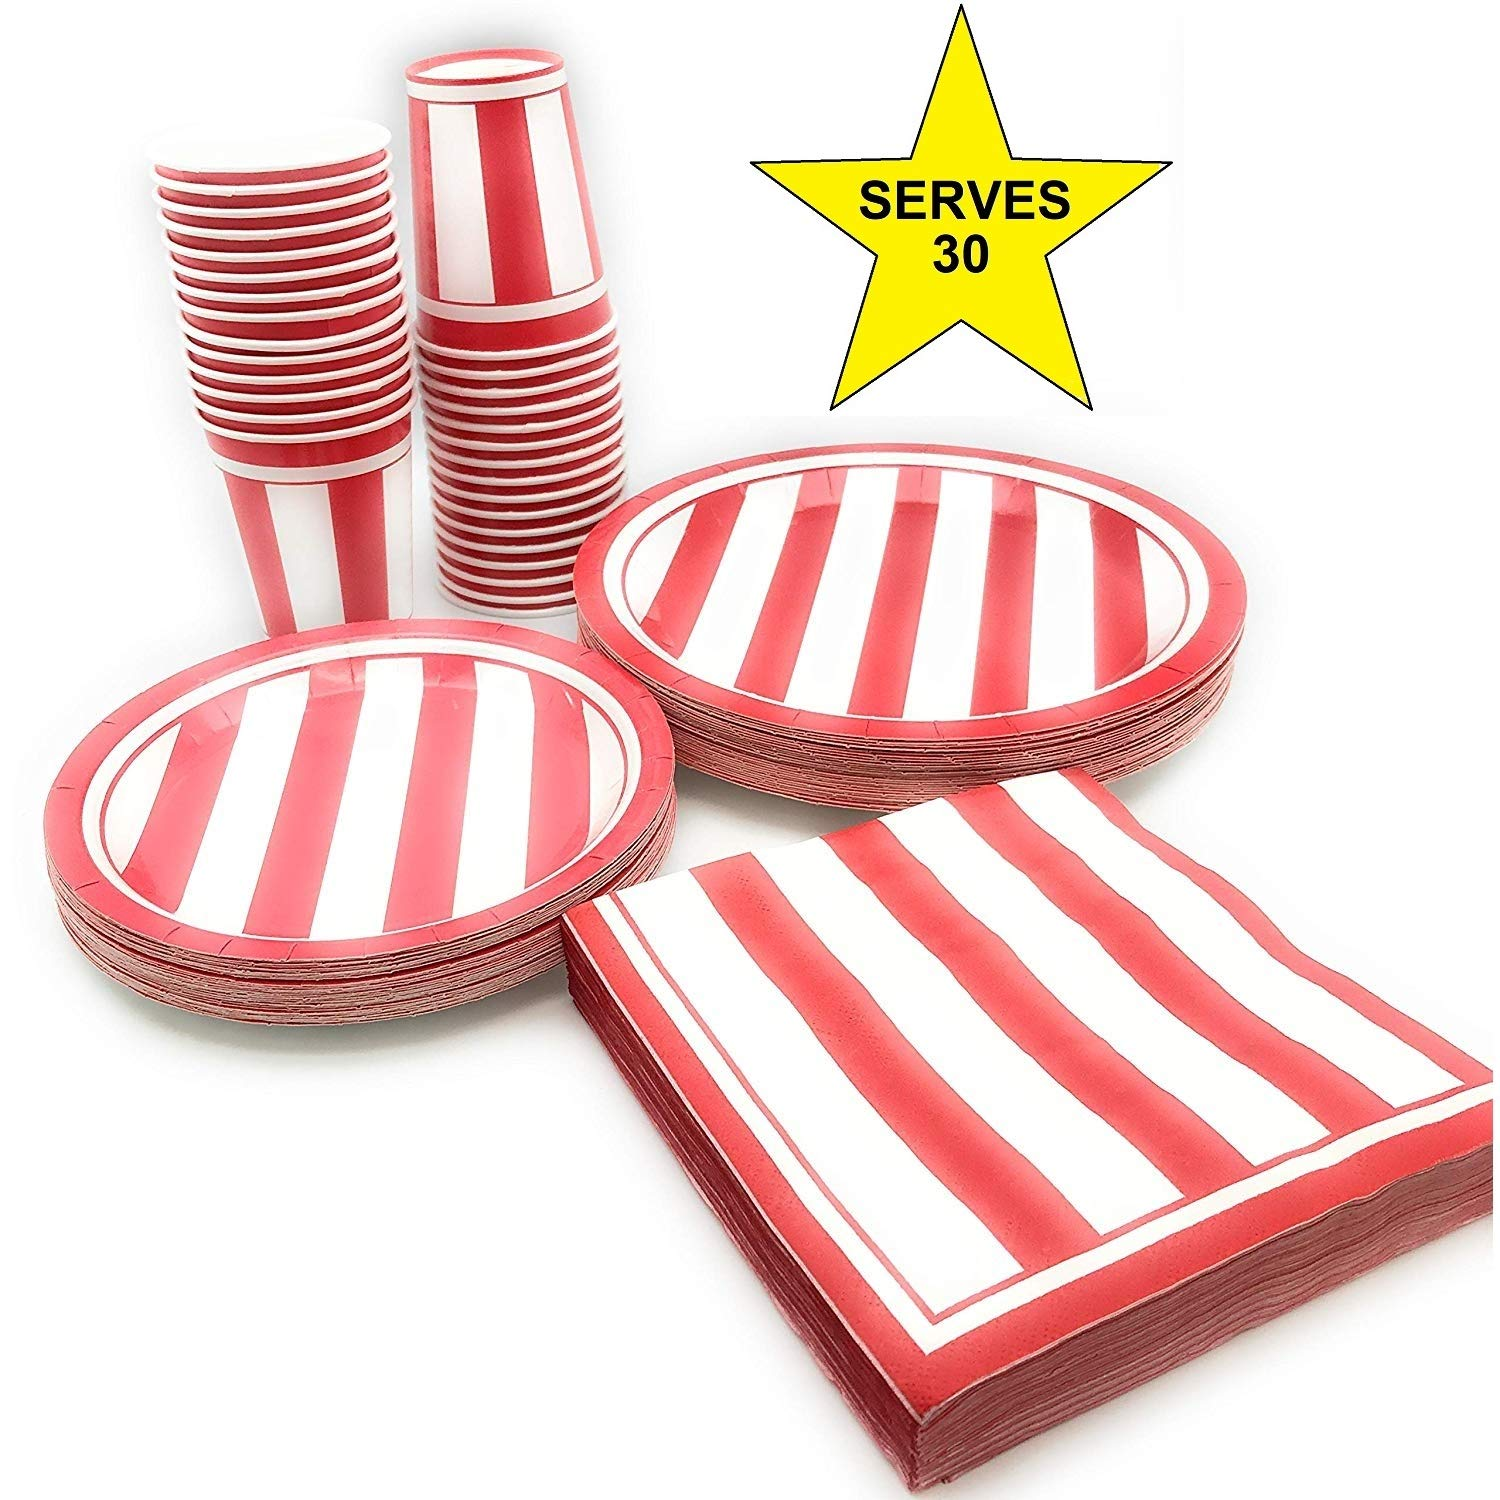 Serves 30 | Complete Party Pack | Red & White Stripes | 9'' Dinner Paper Plates | 7'' Dessert Paper Plates | 9 oz Cups | 3 Ply Napkins | Carnival Party Theme by Oojami